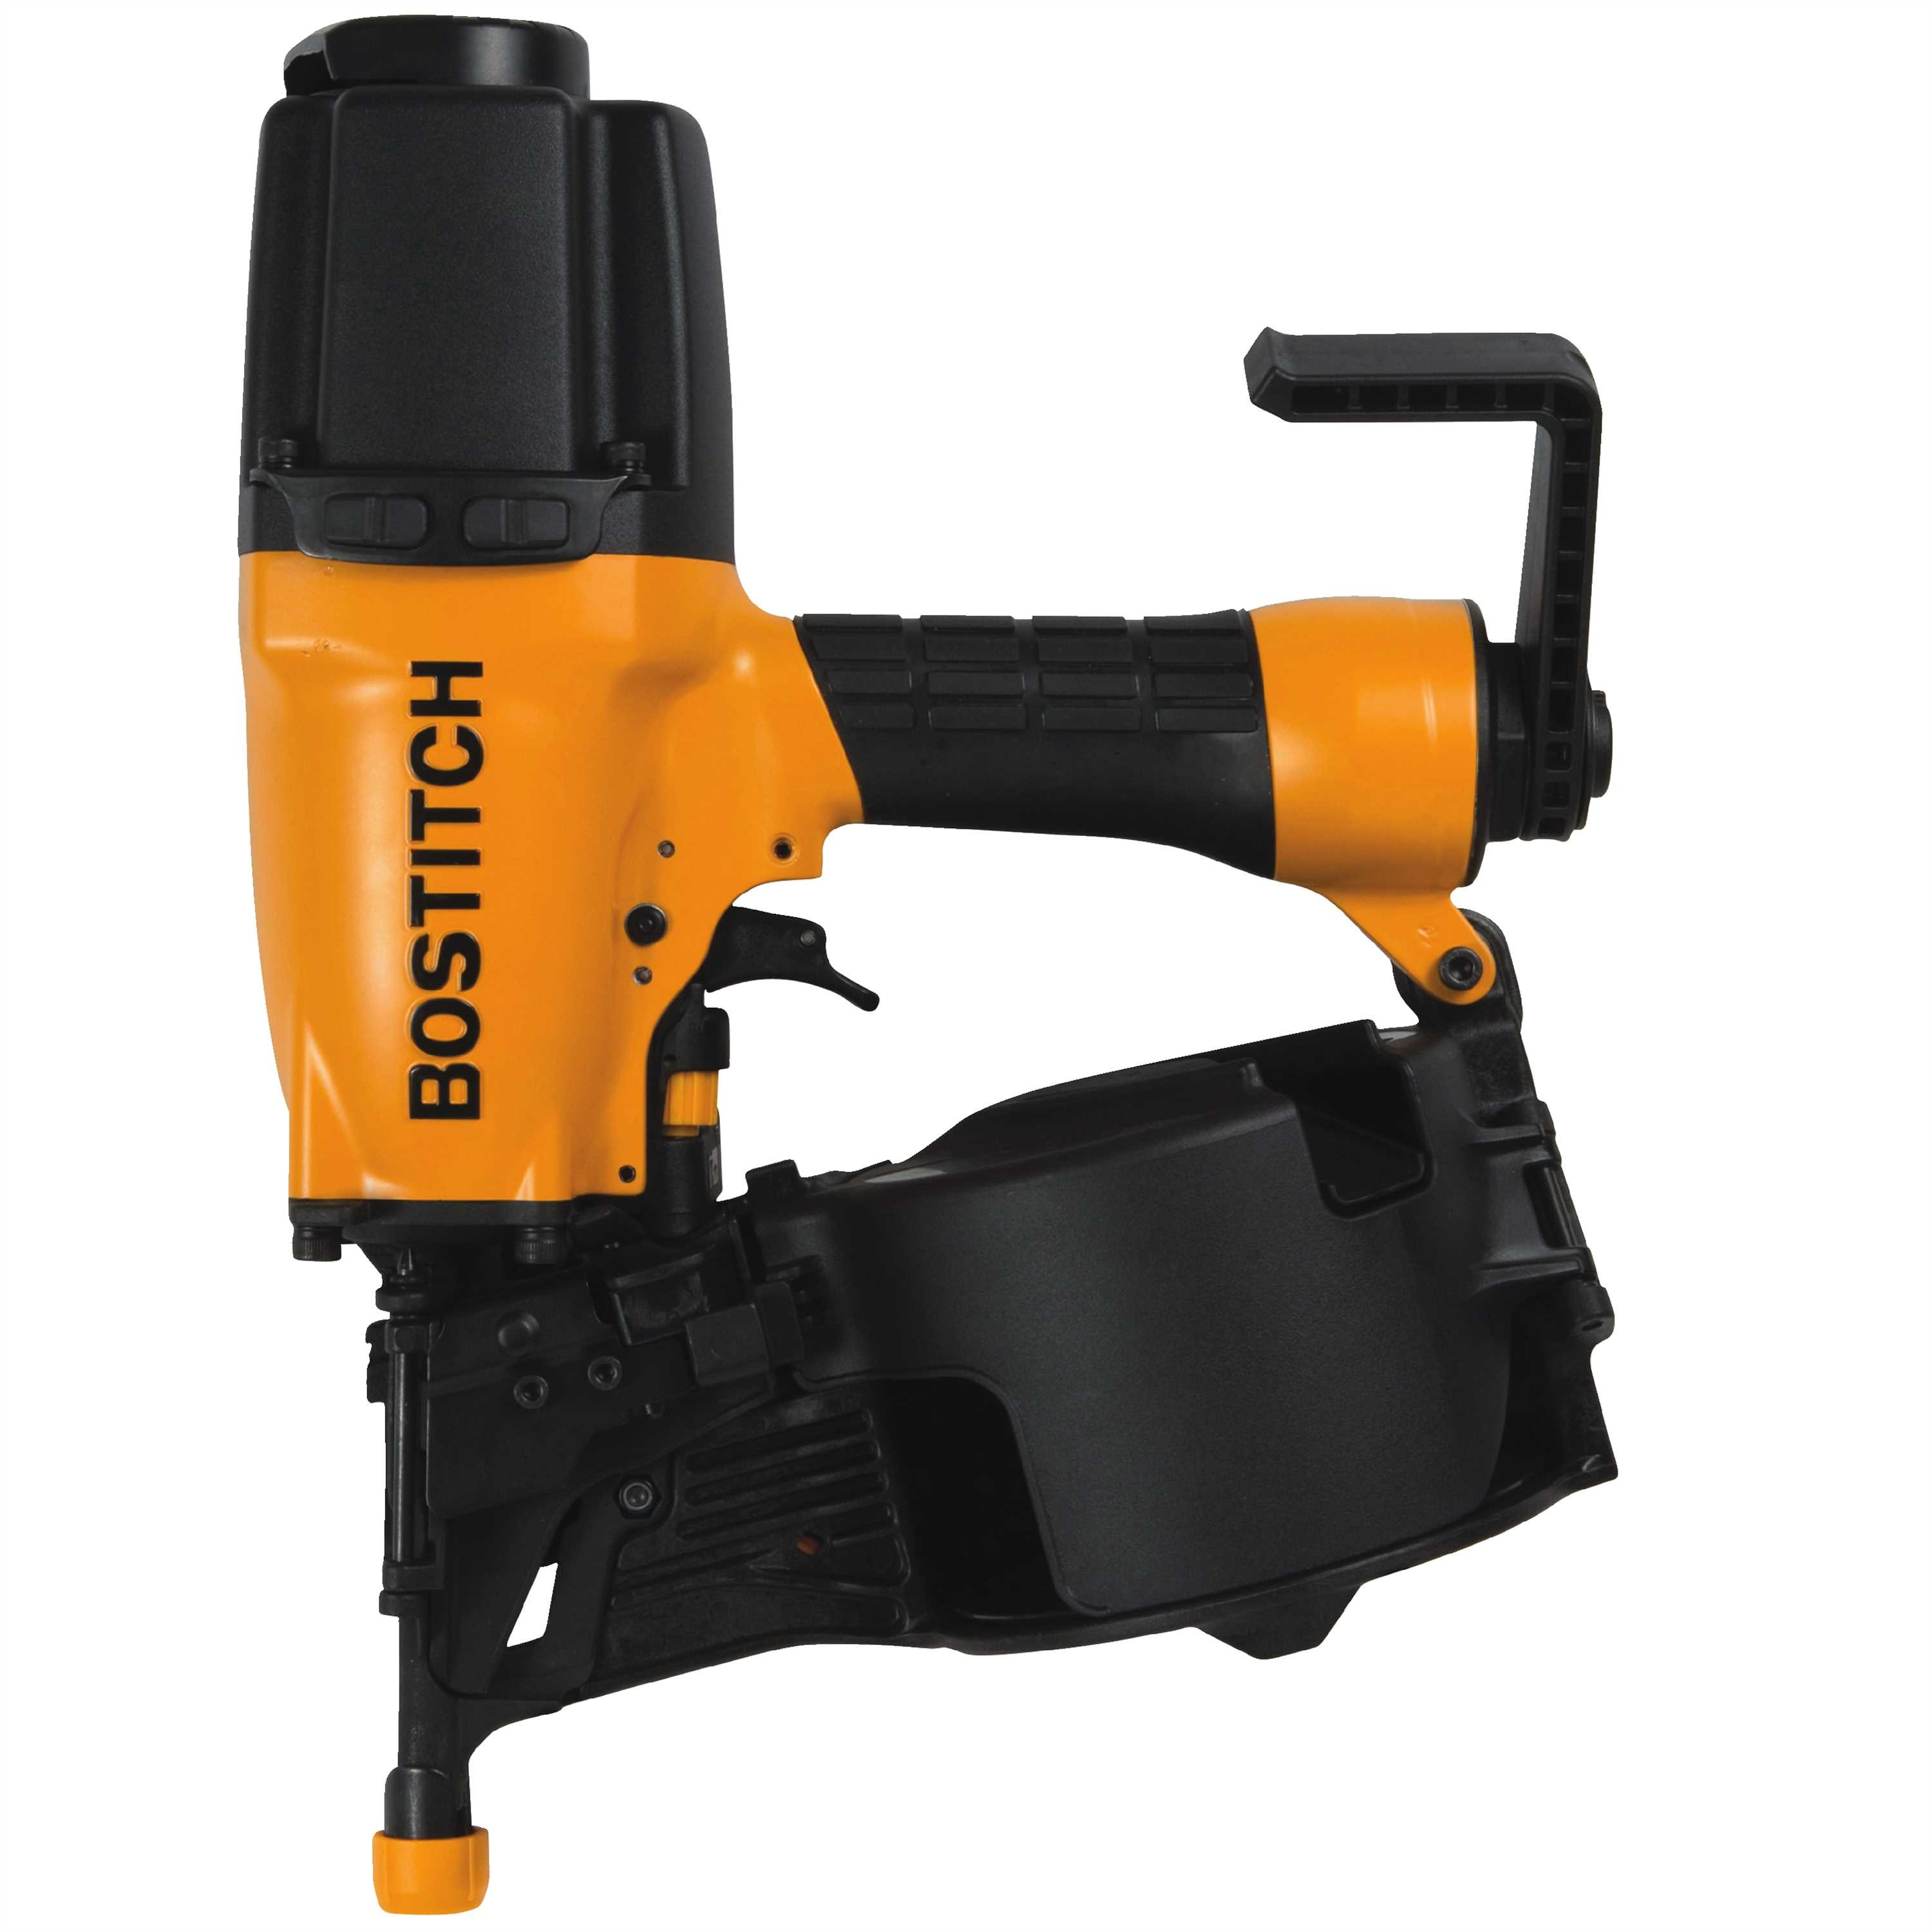 Bostitch - 15 Degree Coil Sheathing and Siding Nailer - N75C-1